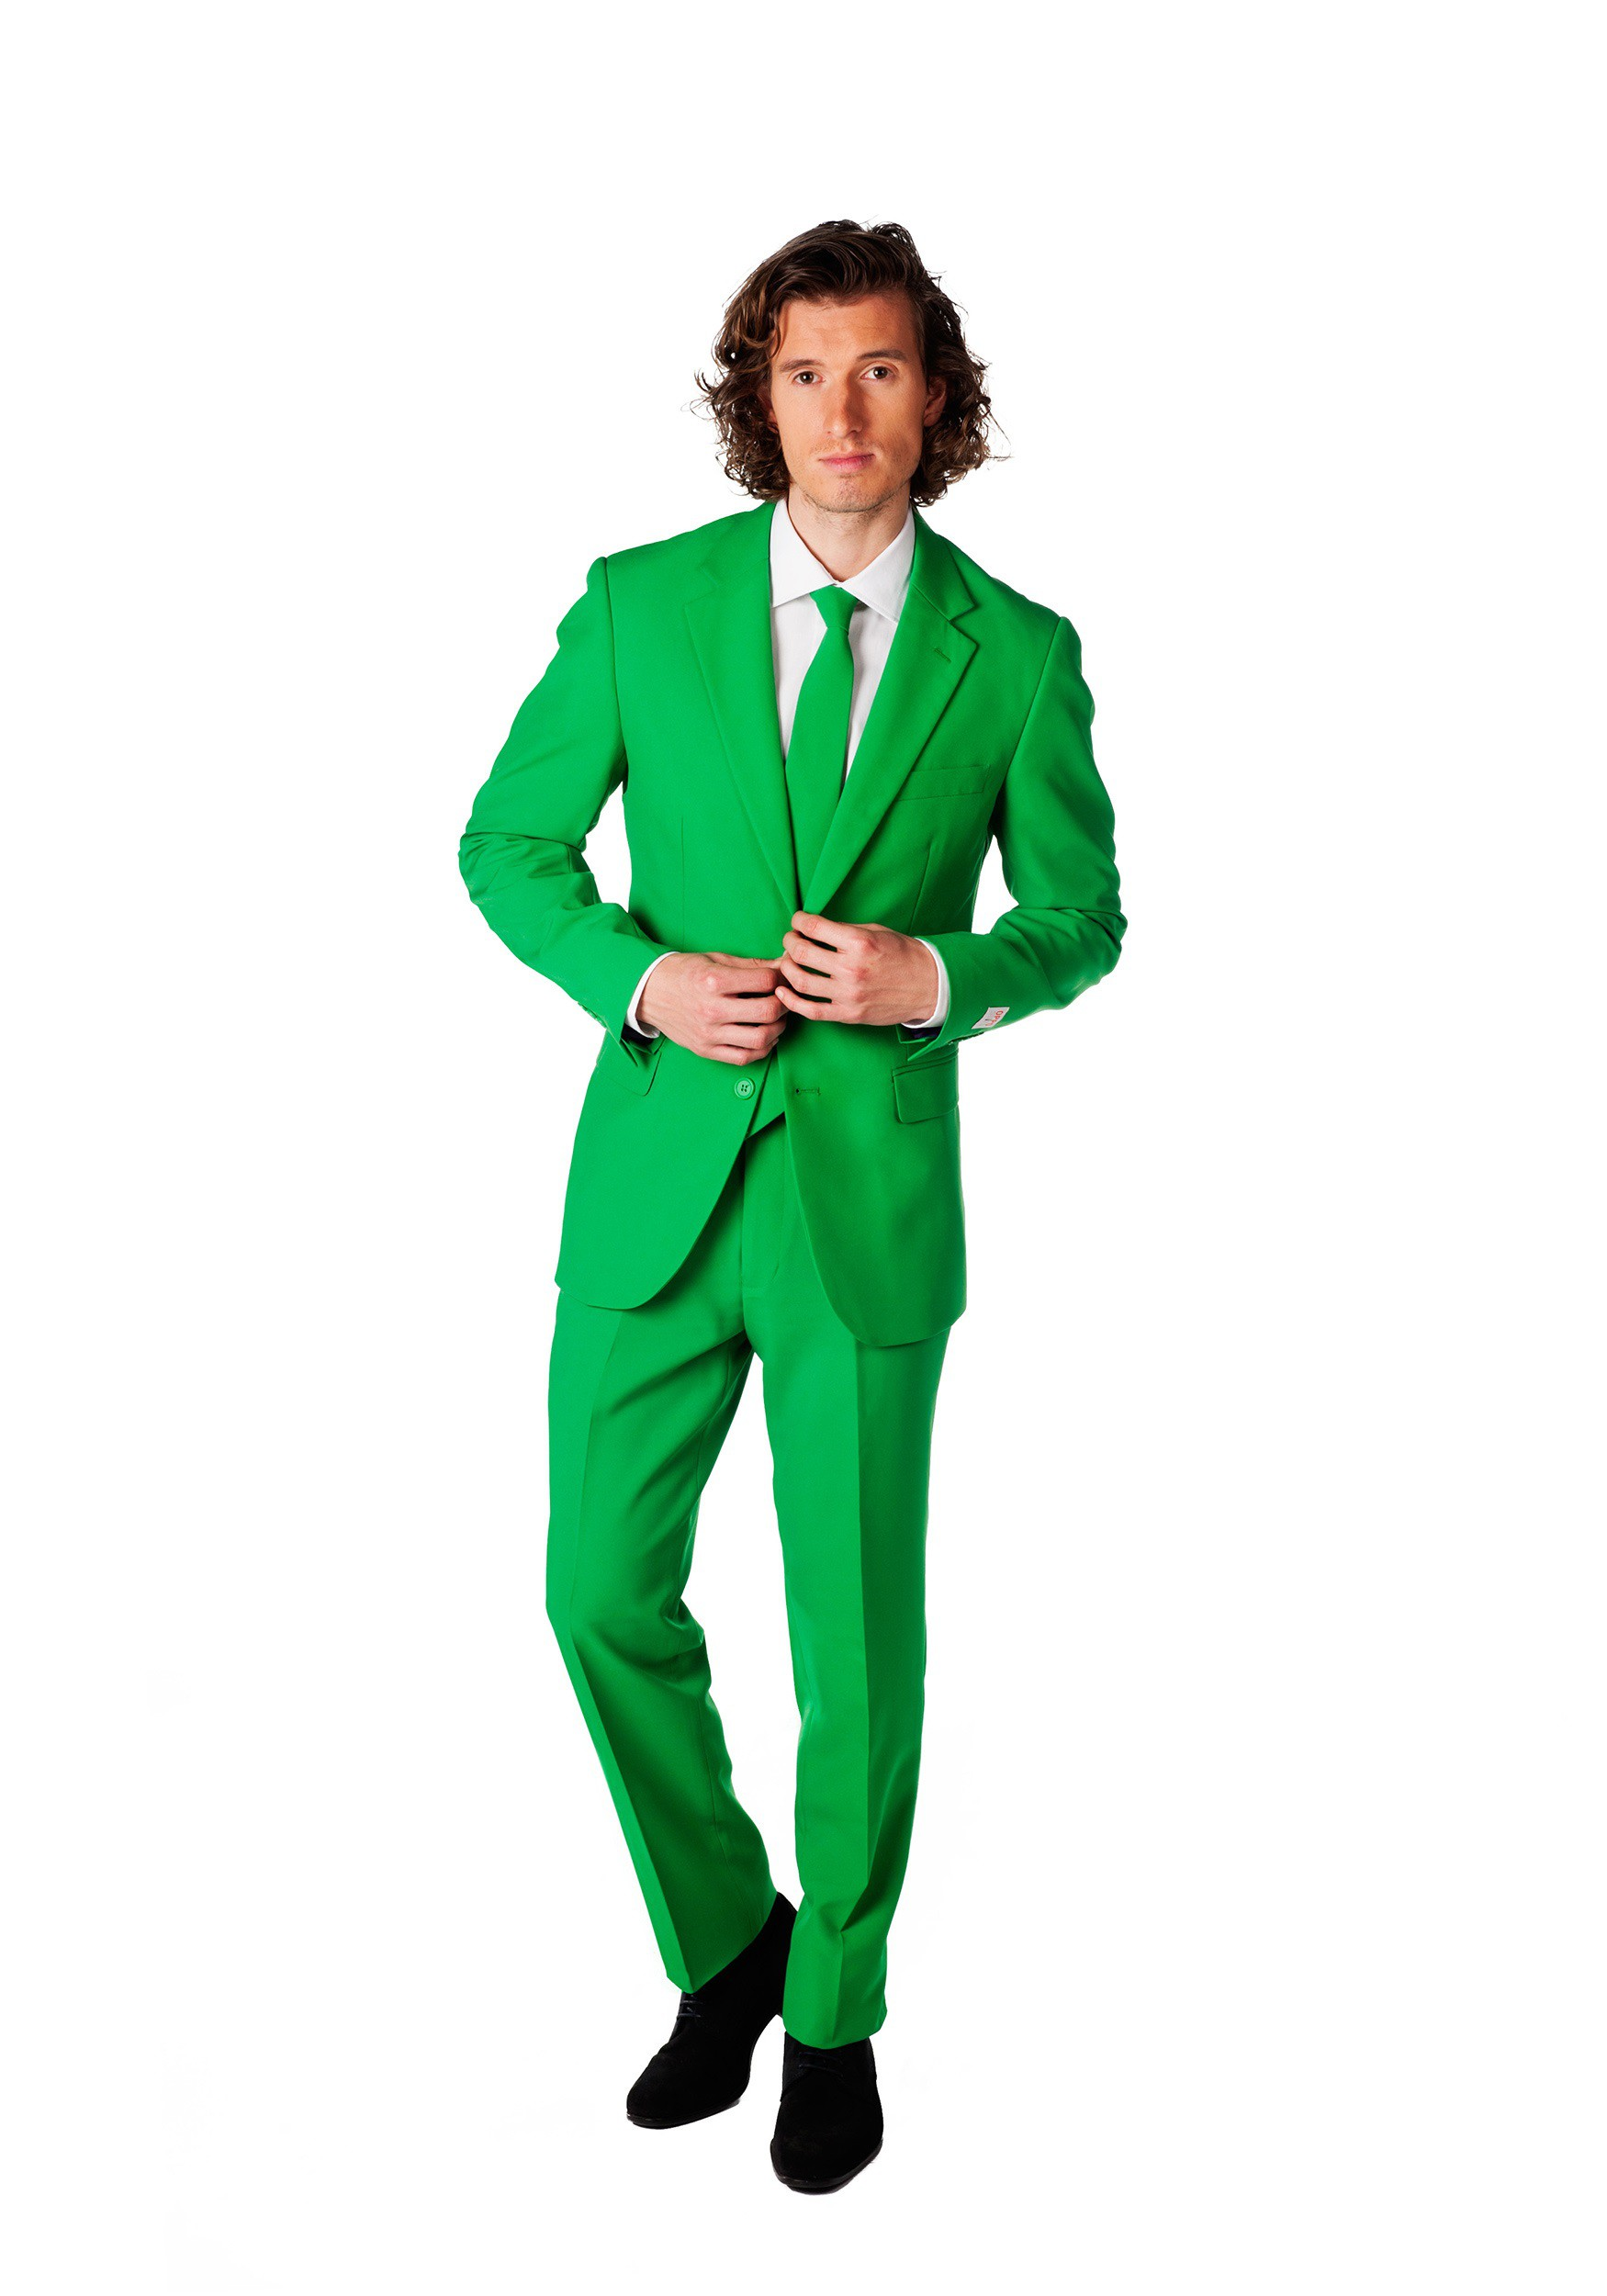 2b0f3c7e0b59a0 Men's OppoSuits Green Suit